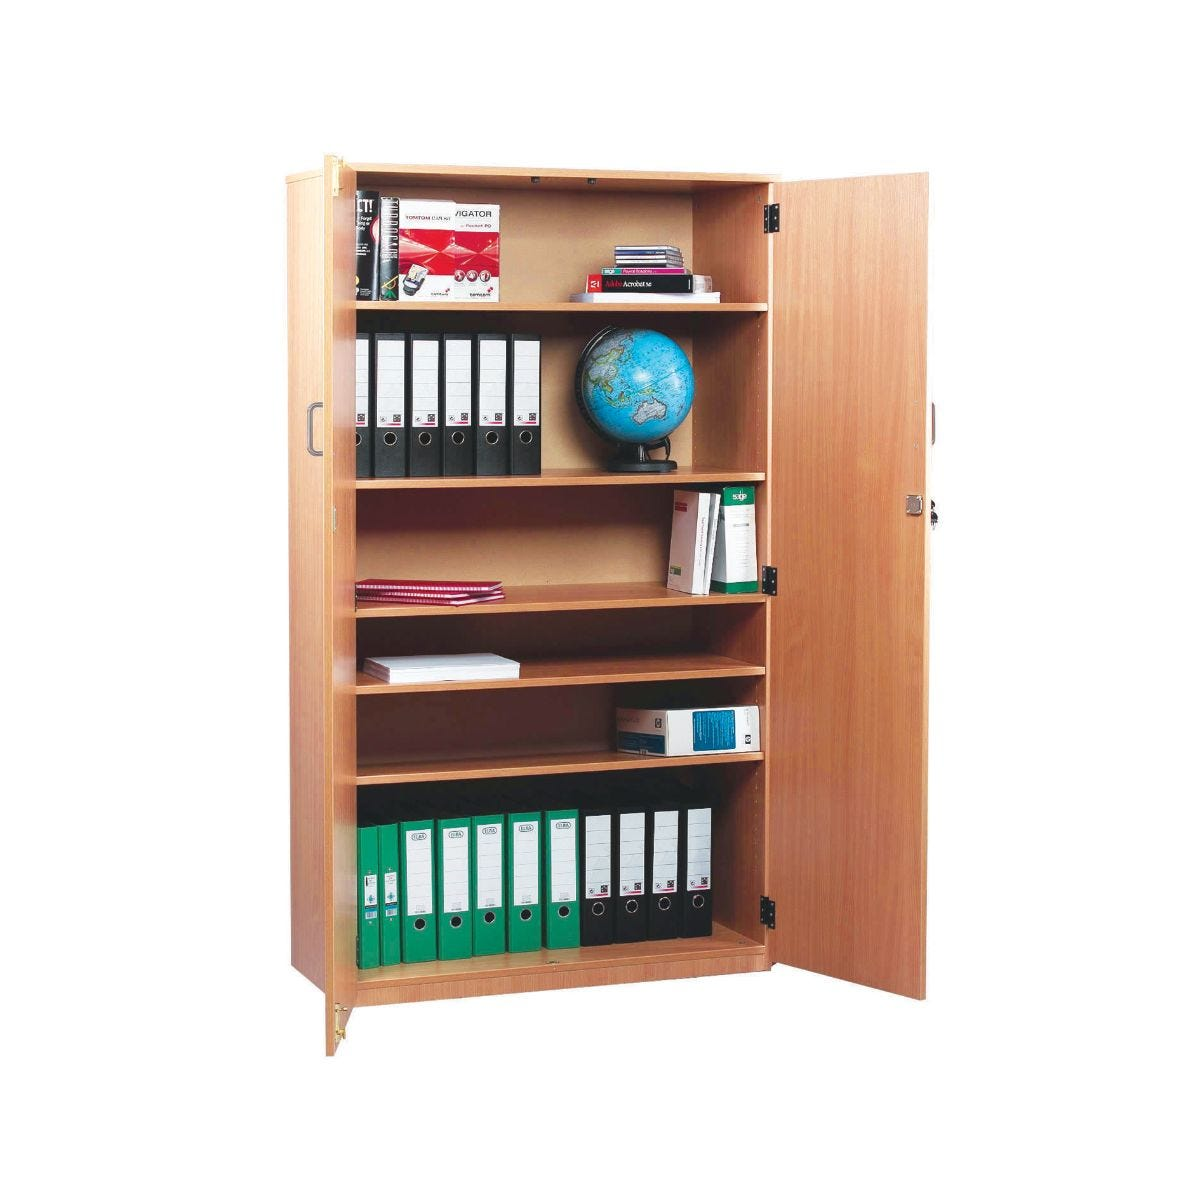 Storage Cupboard 1818mm with 1 Fixed and 4 Adjustable Shelves, Beech